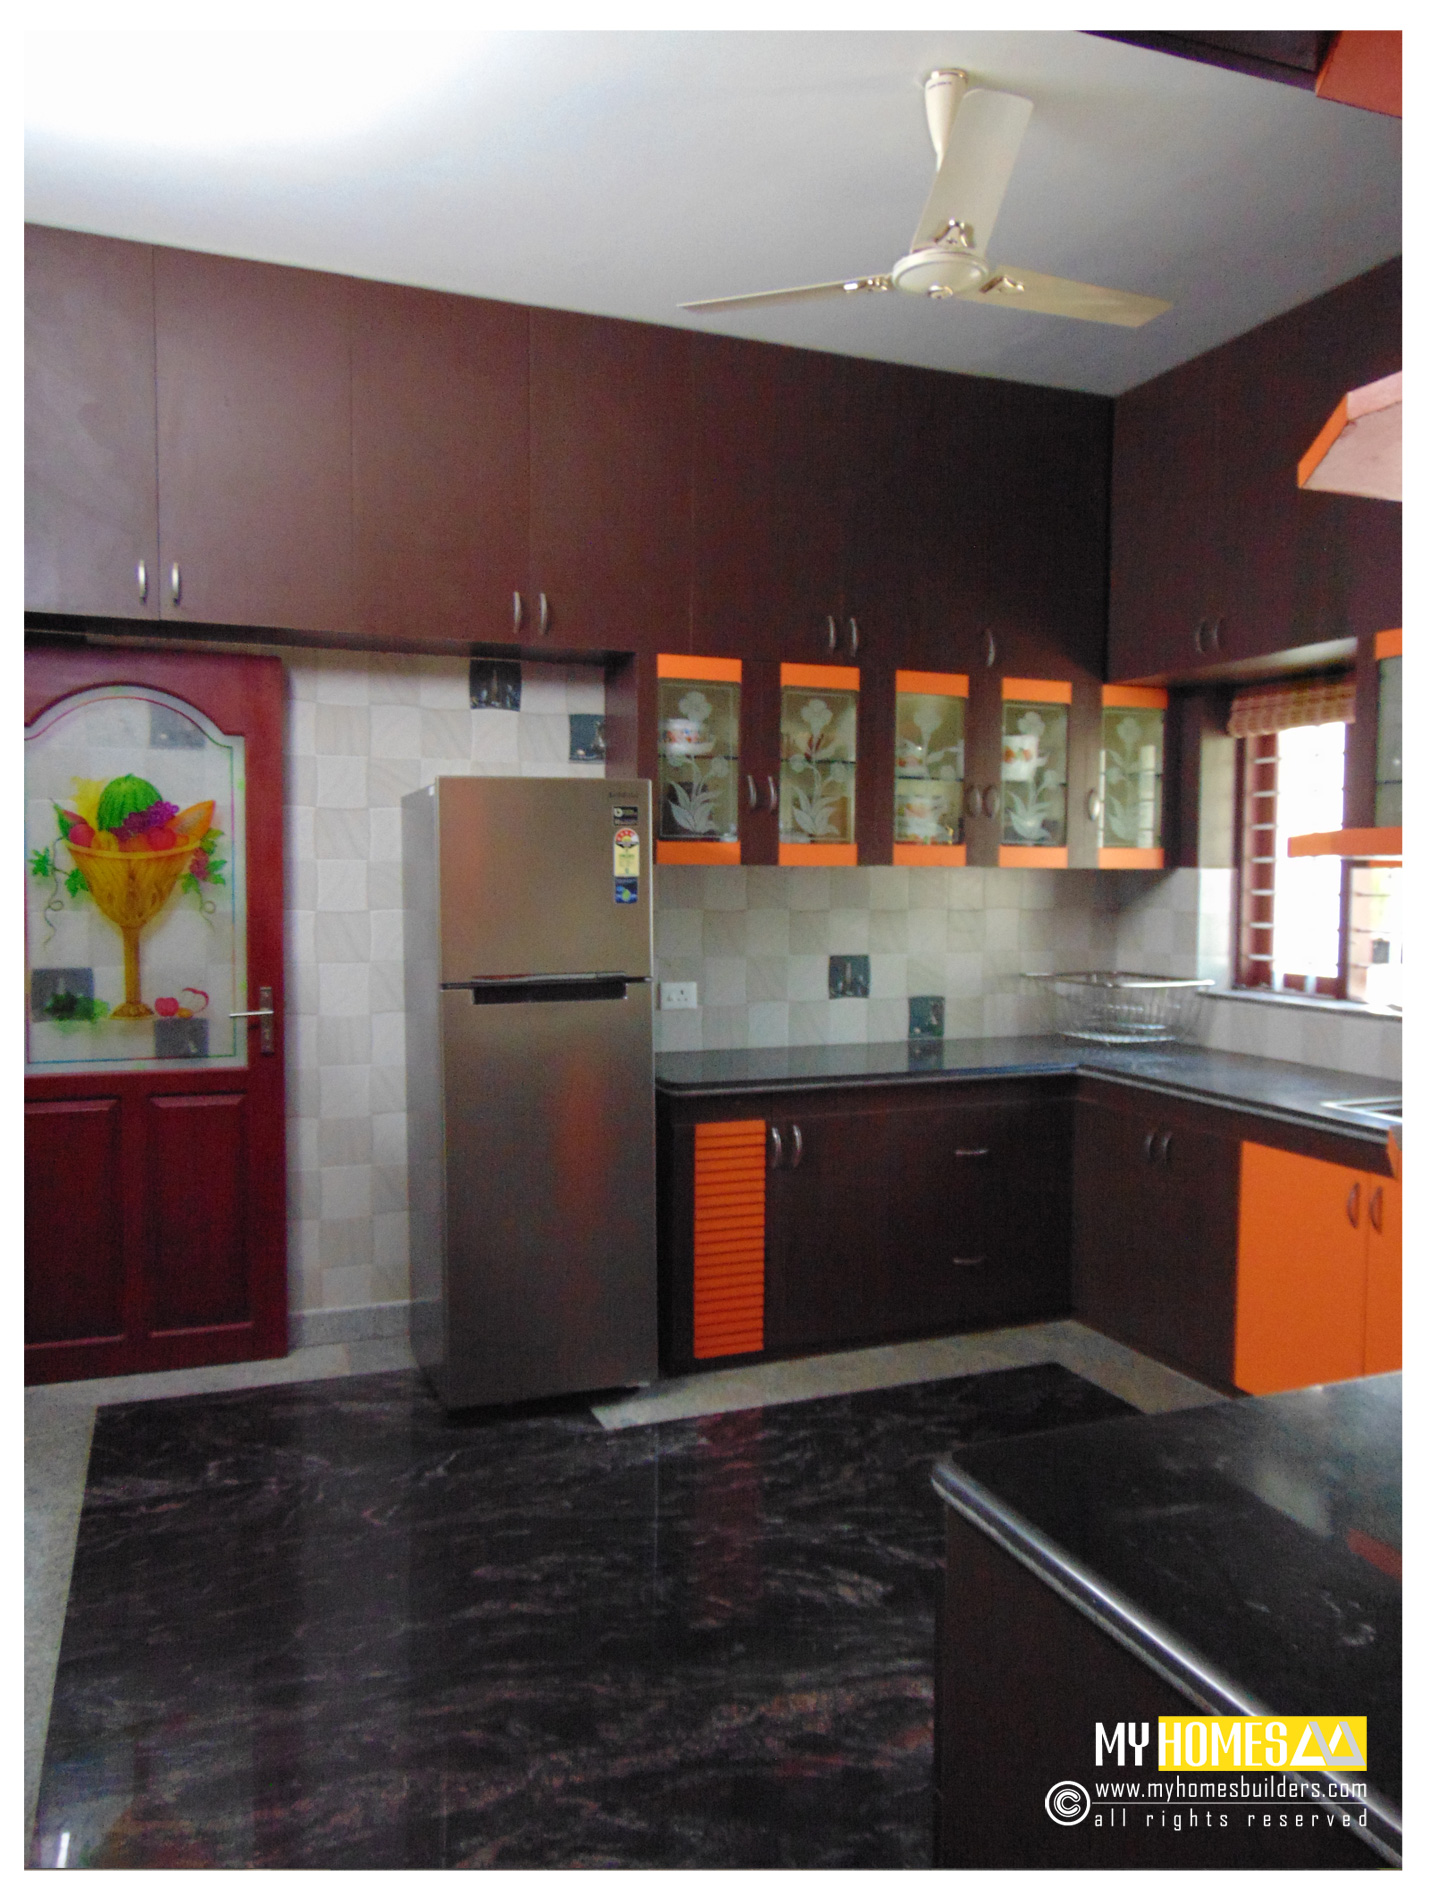 Kerala kitchen designs idea in modular style for house in for Latest interior design for kitchen